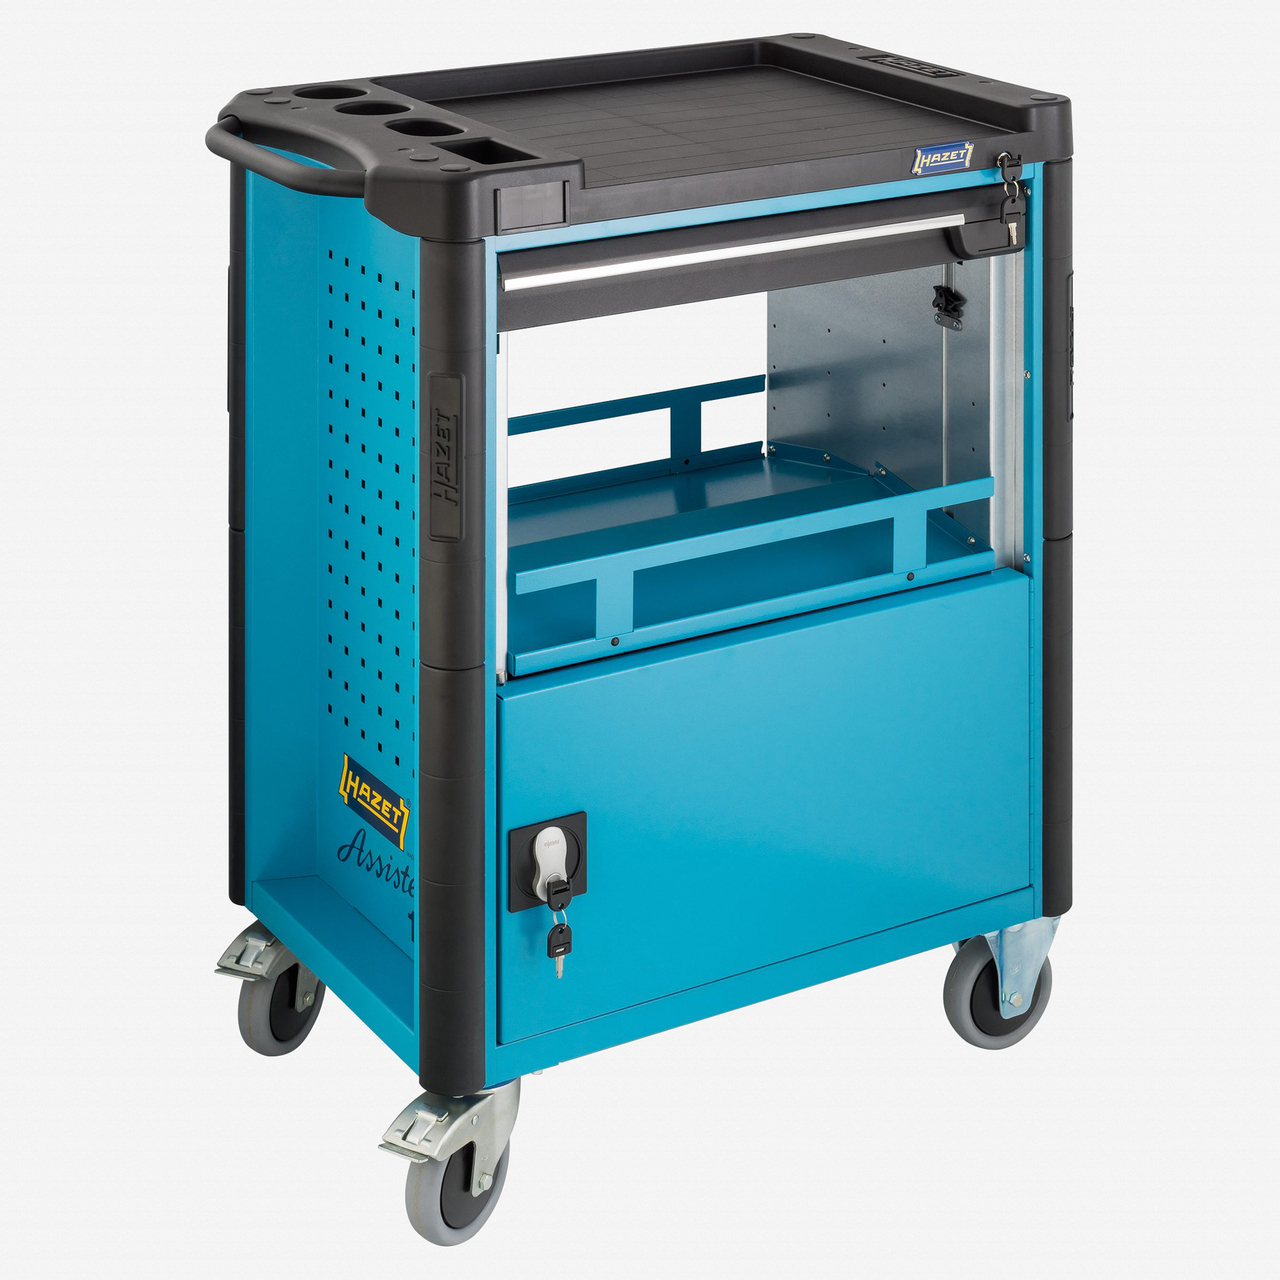 Hazet 179-1 Tool trolley Assistent  - KC Tool